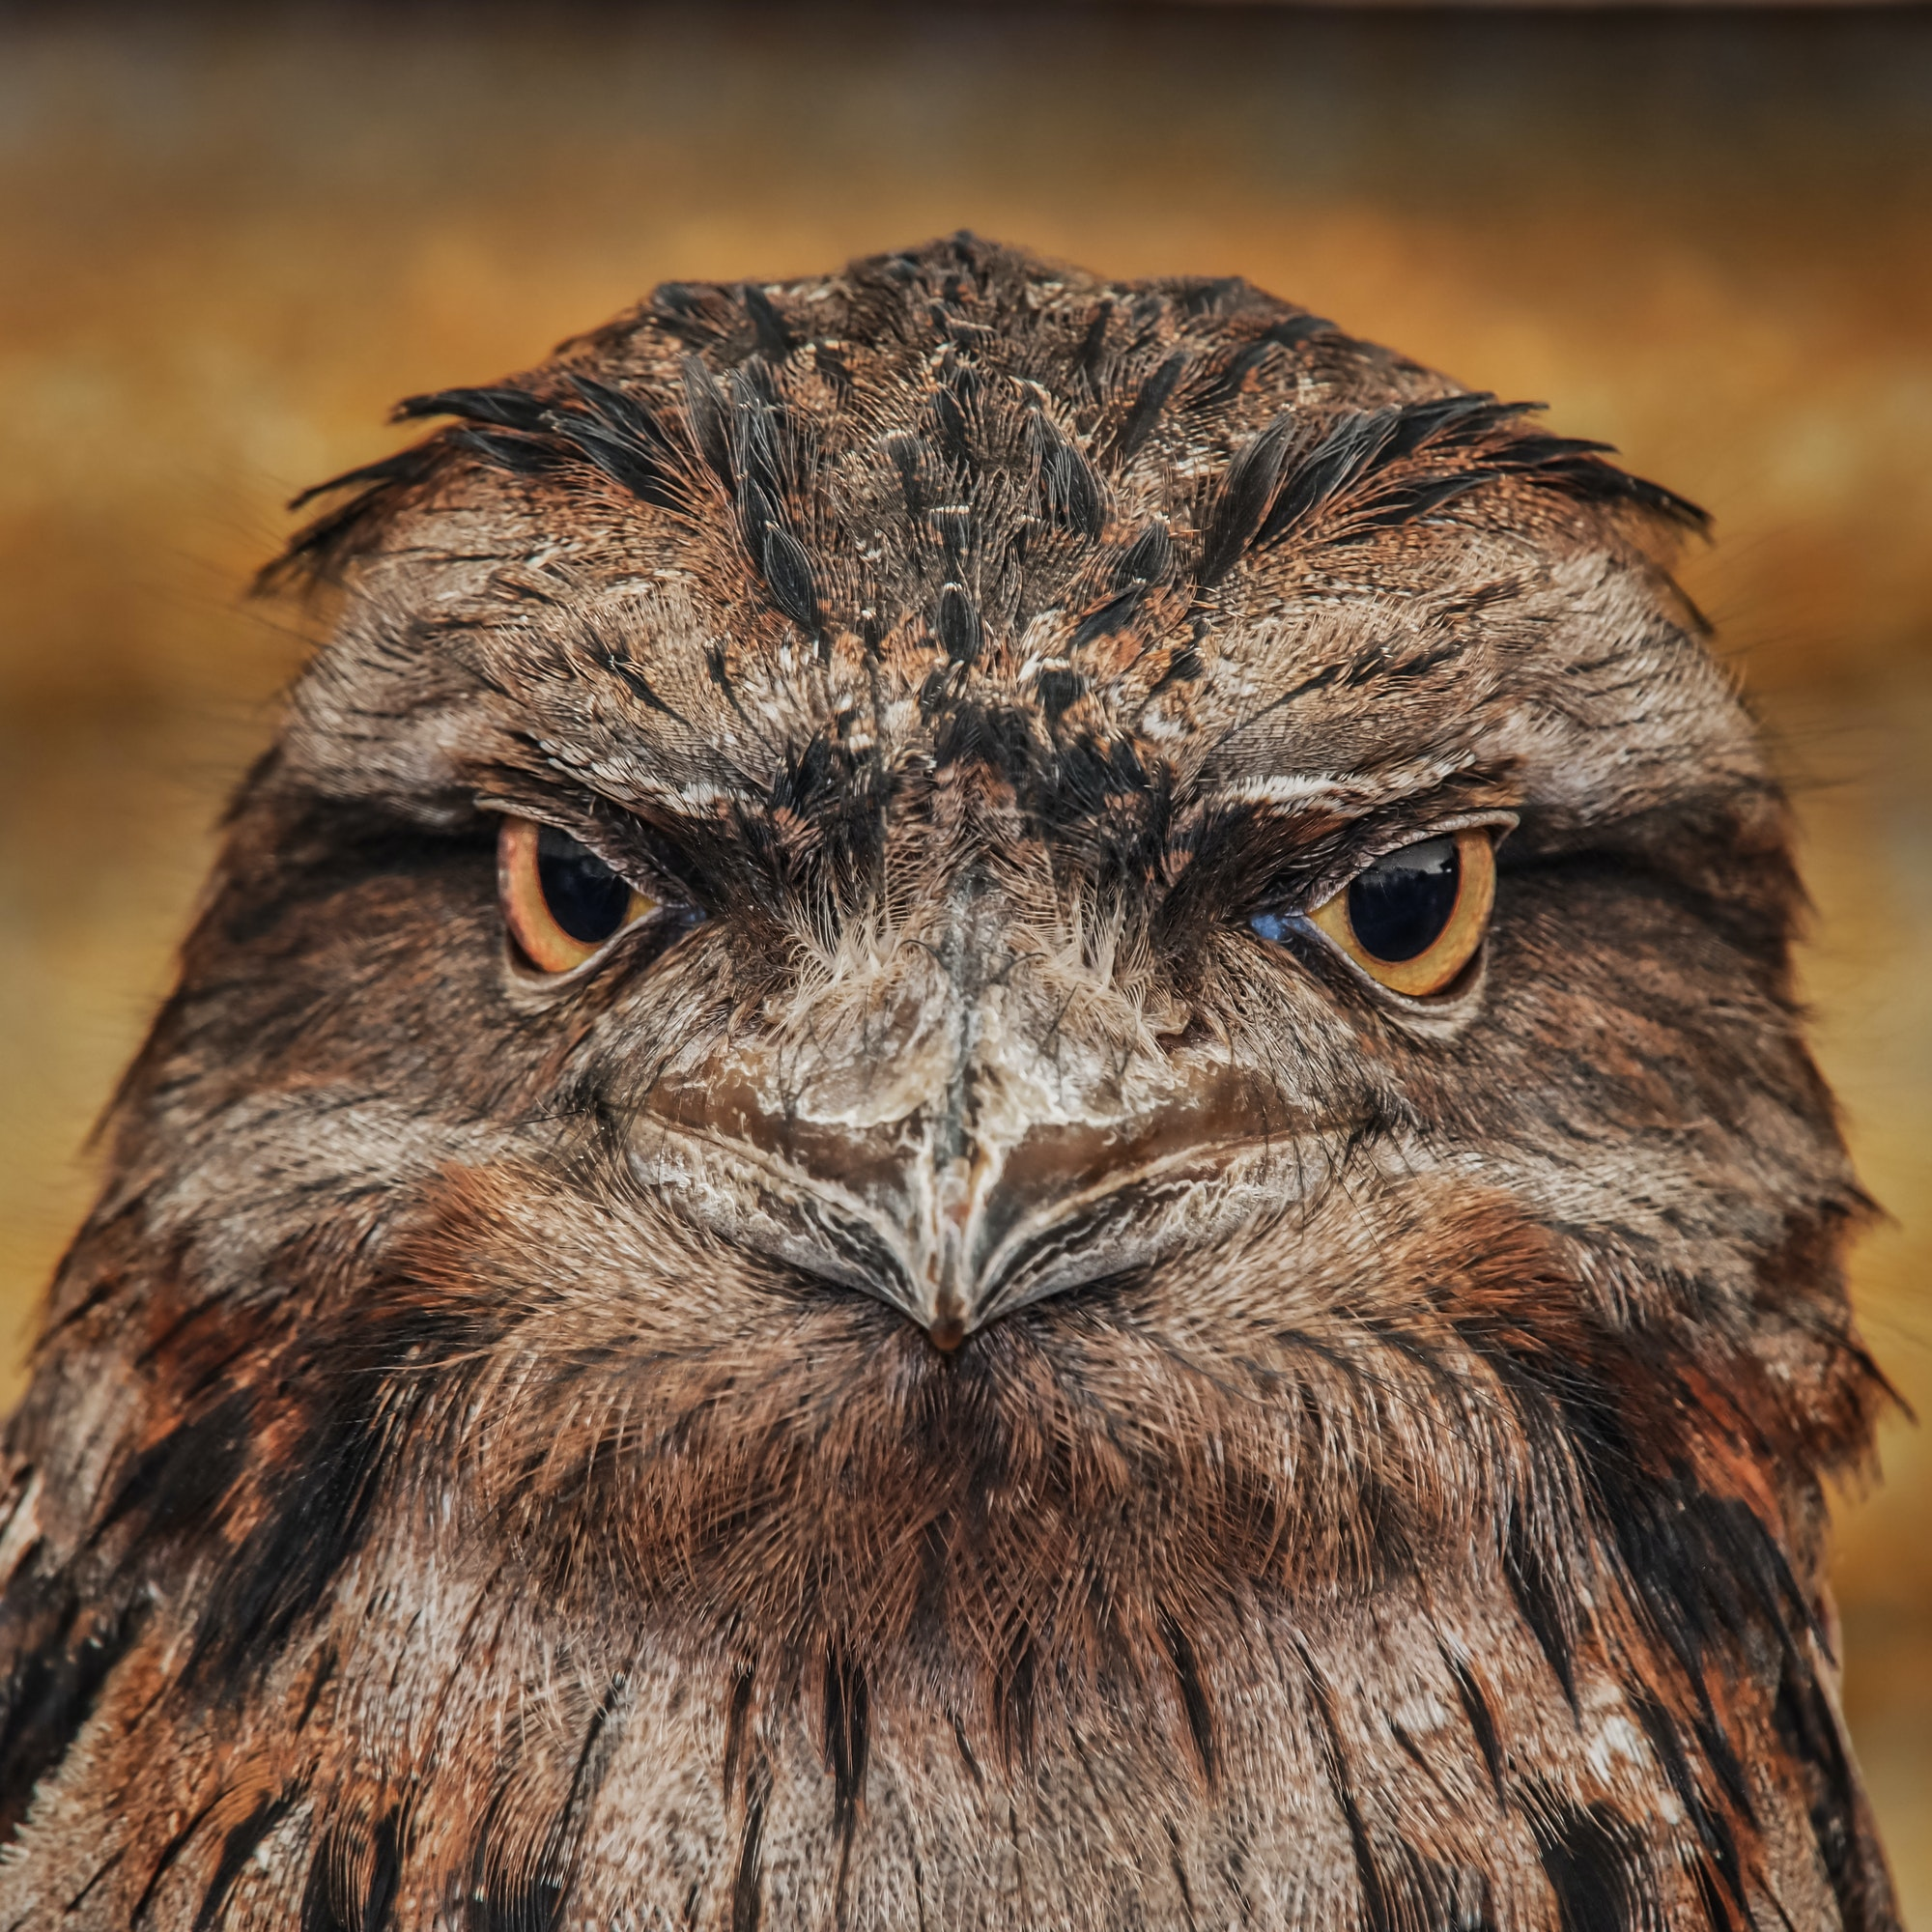 This good looking guy is a Tawny Frogmouth, an Australian bird